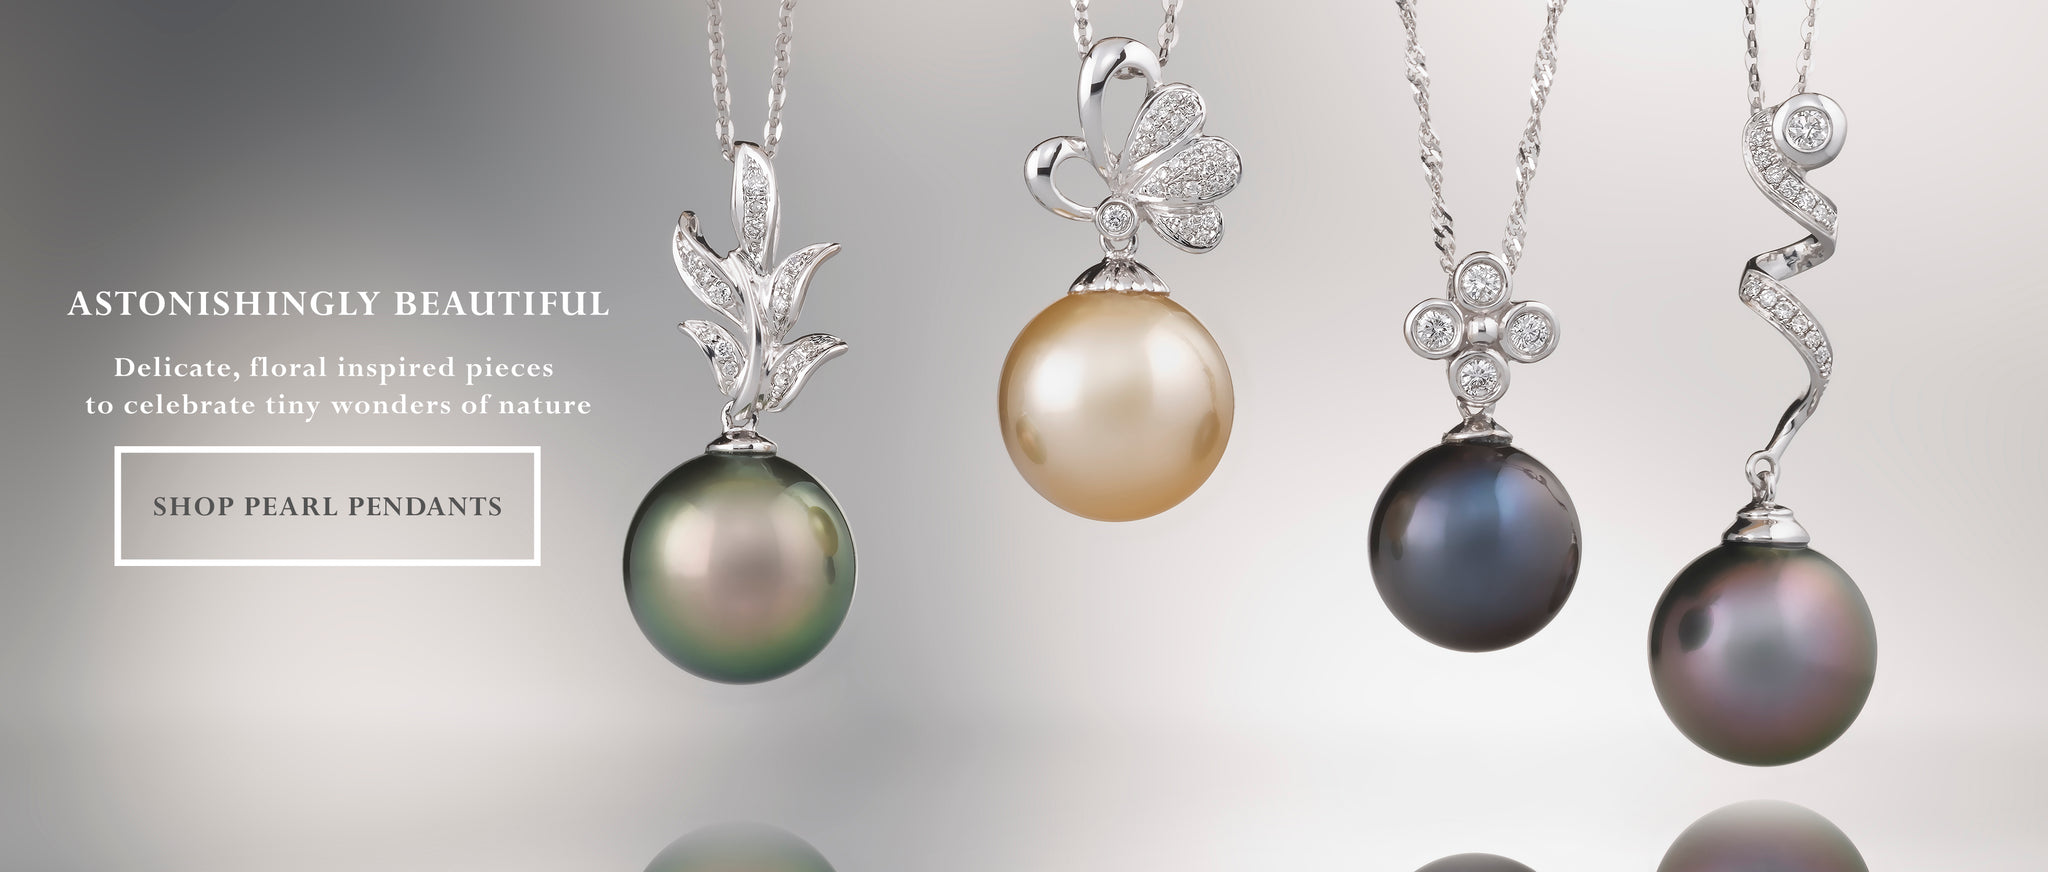 Luxury Pearl Pendants